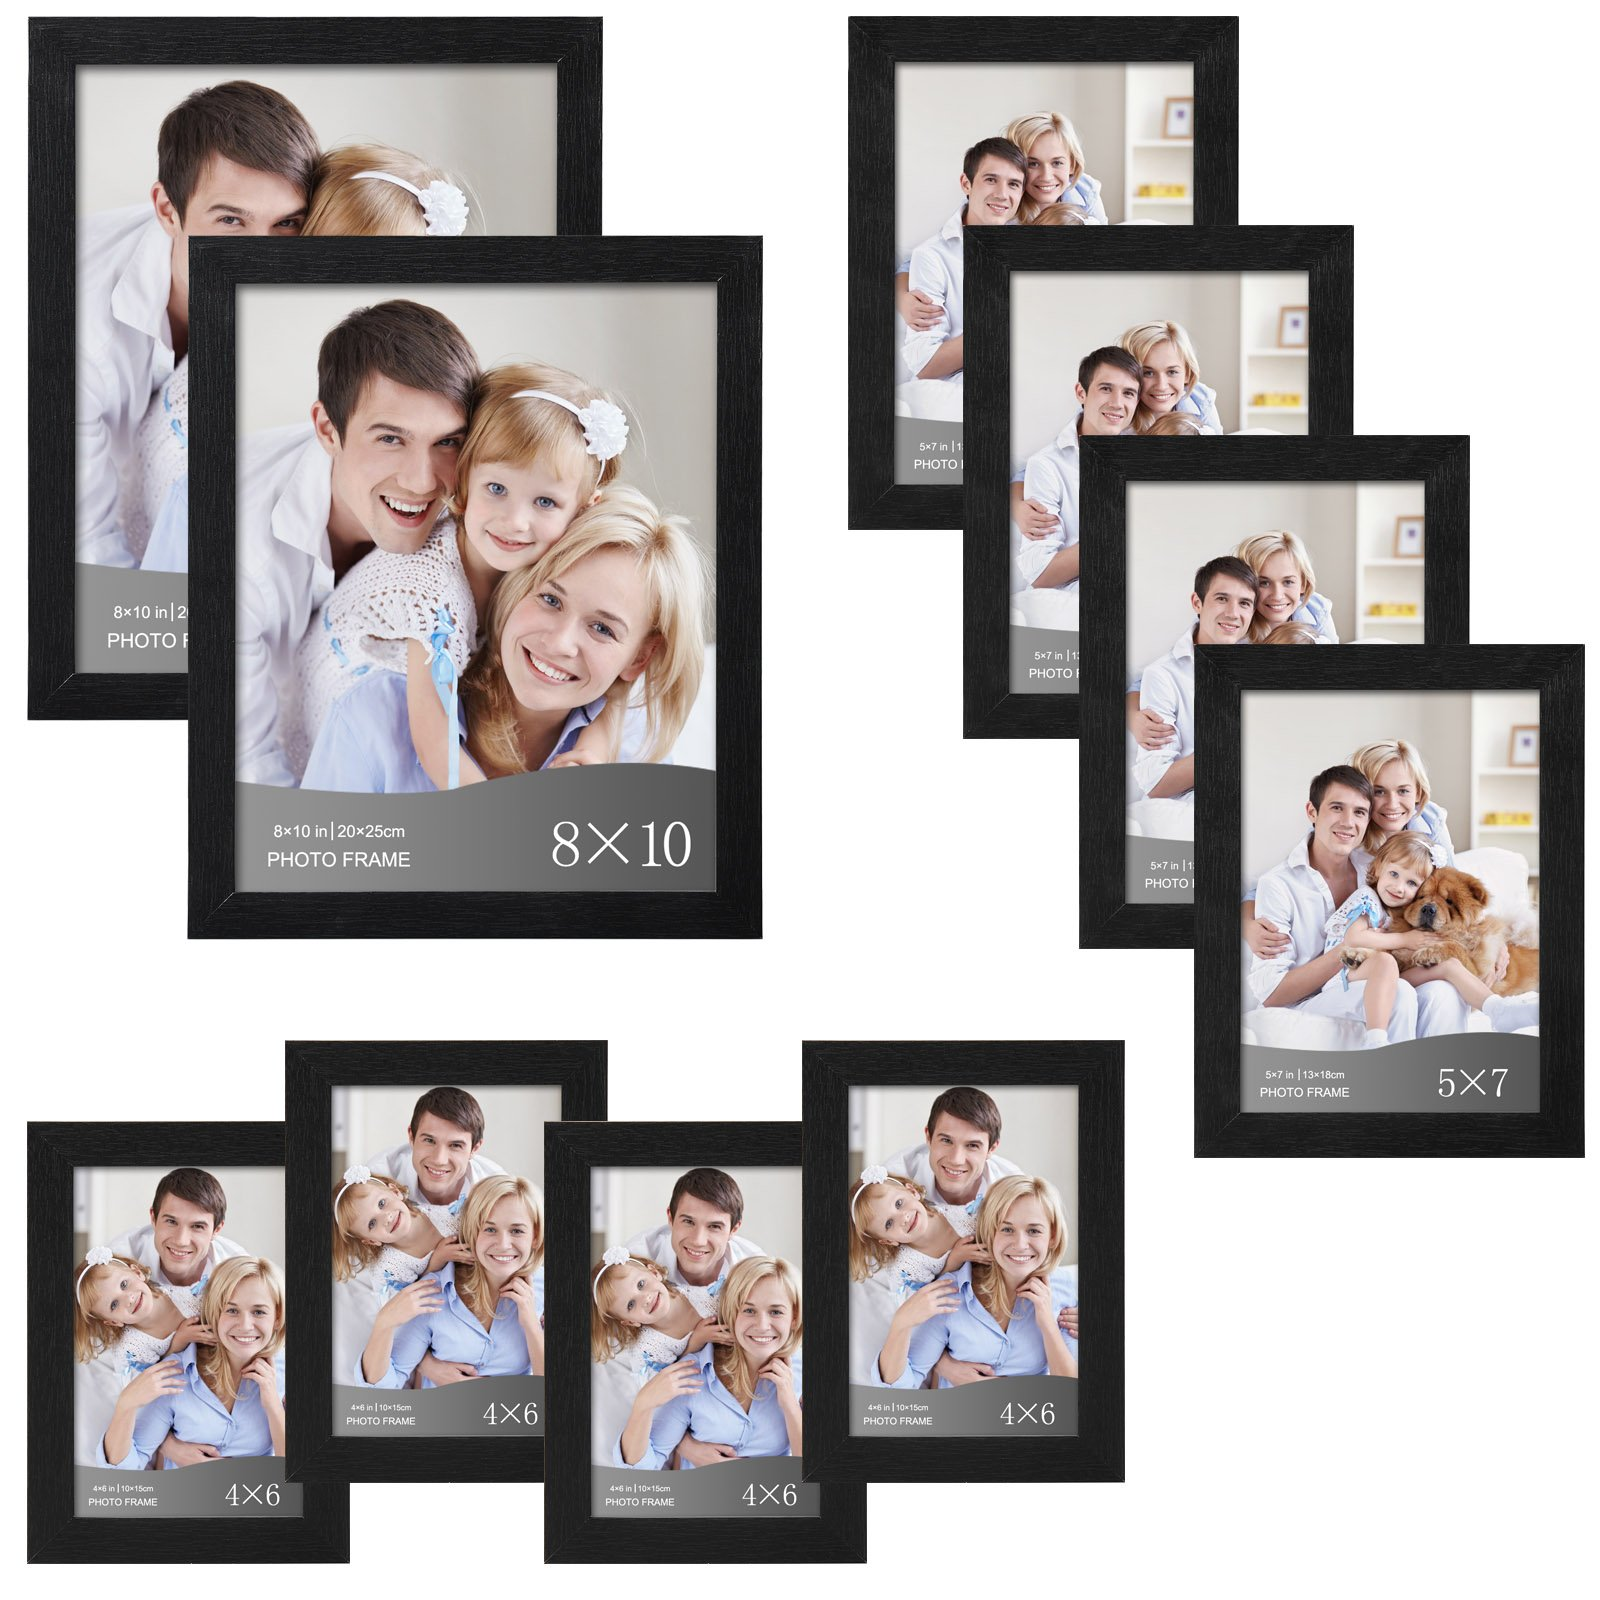 WOLTU 10 Piece Multi Pack Black Picture Frame Set for Wall with Plexiglass Cover,2-8x10,4-5x7,4-4x6,PF02C10-x by WOLTU